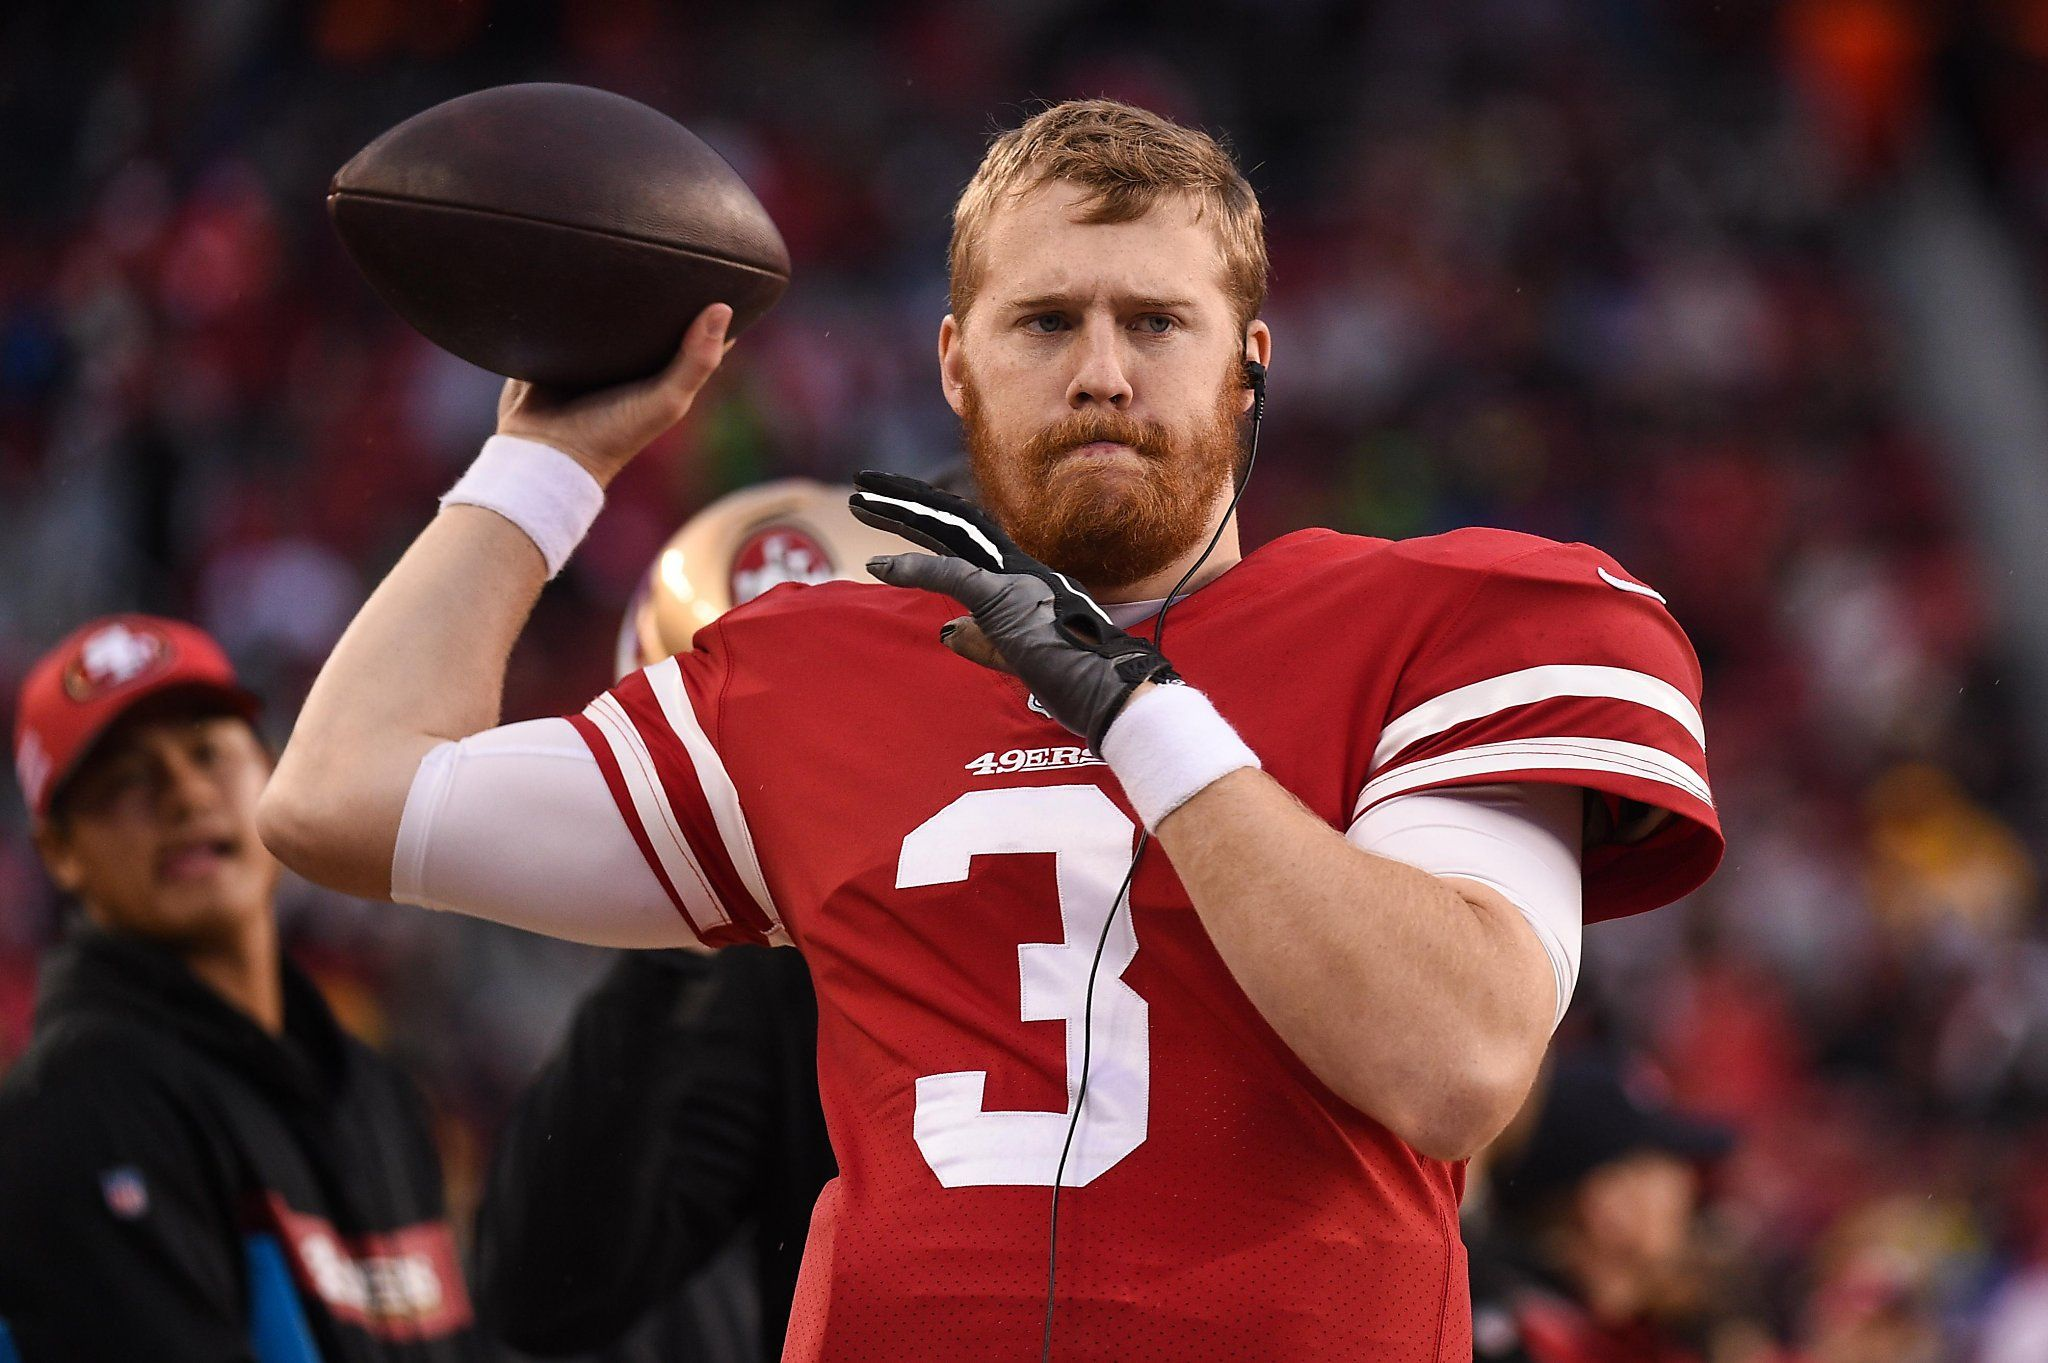 49ers' C.J. Beathard posts tribute to younger brother